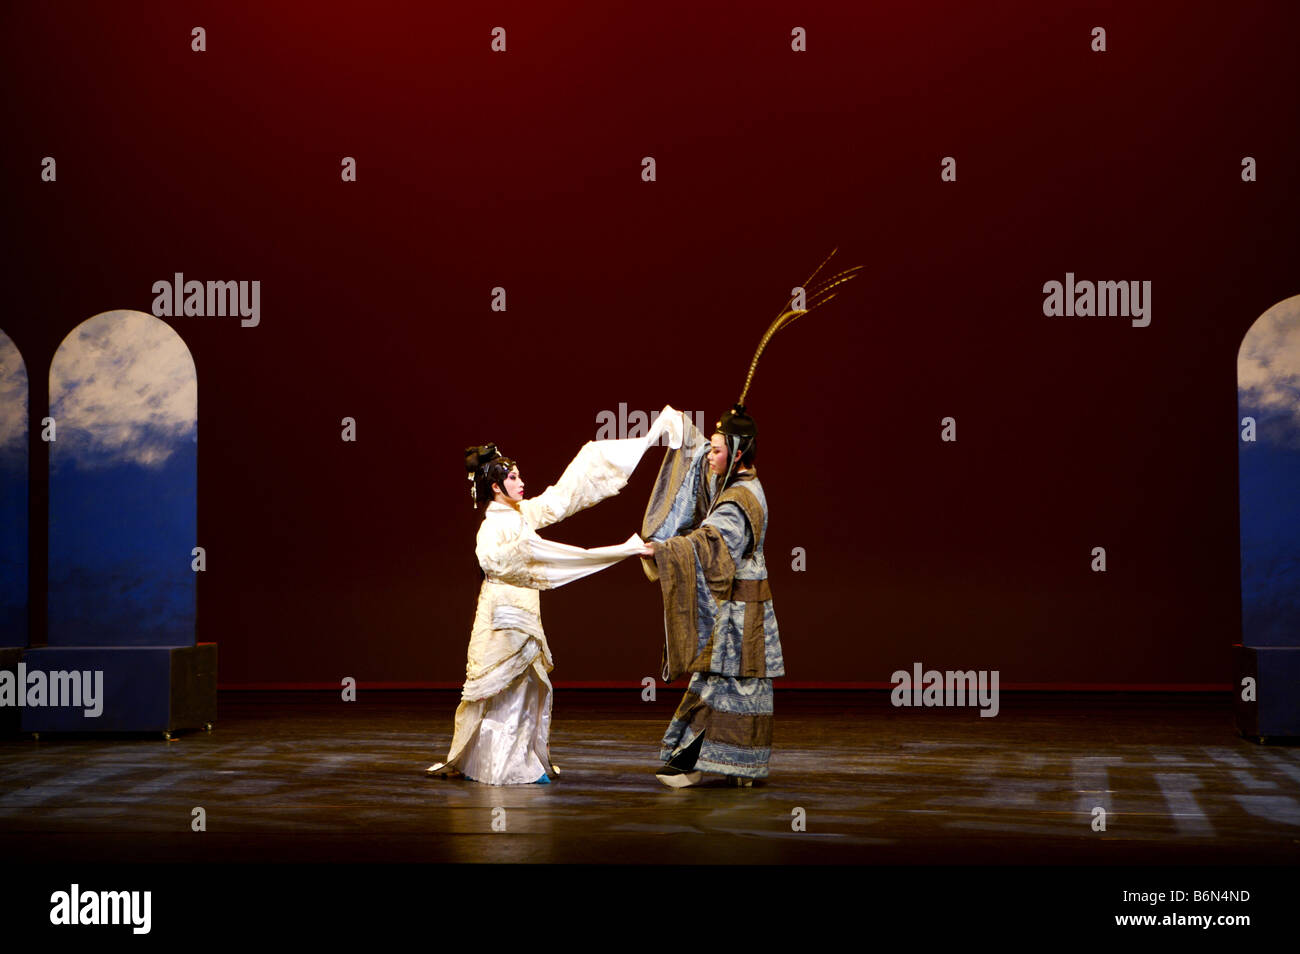 Opera performers on stage - Stock Image